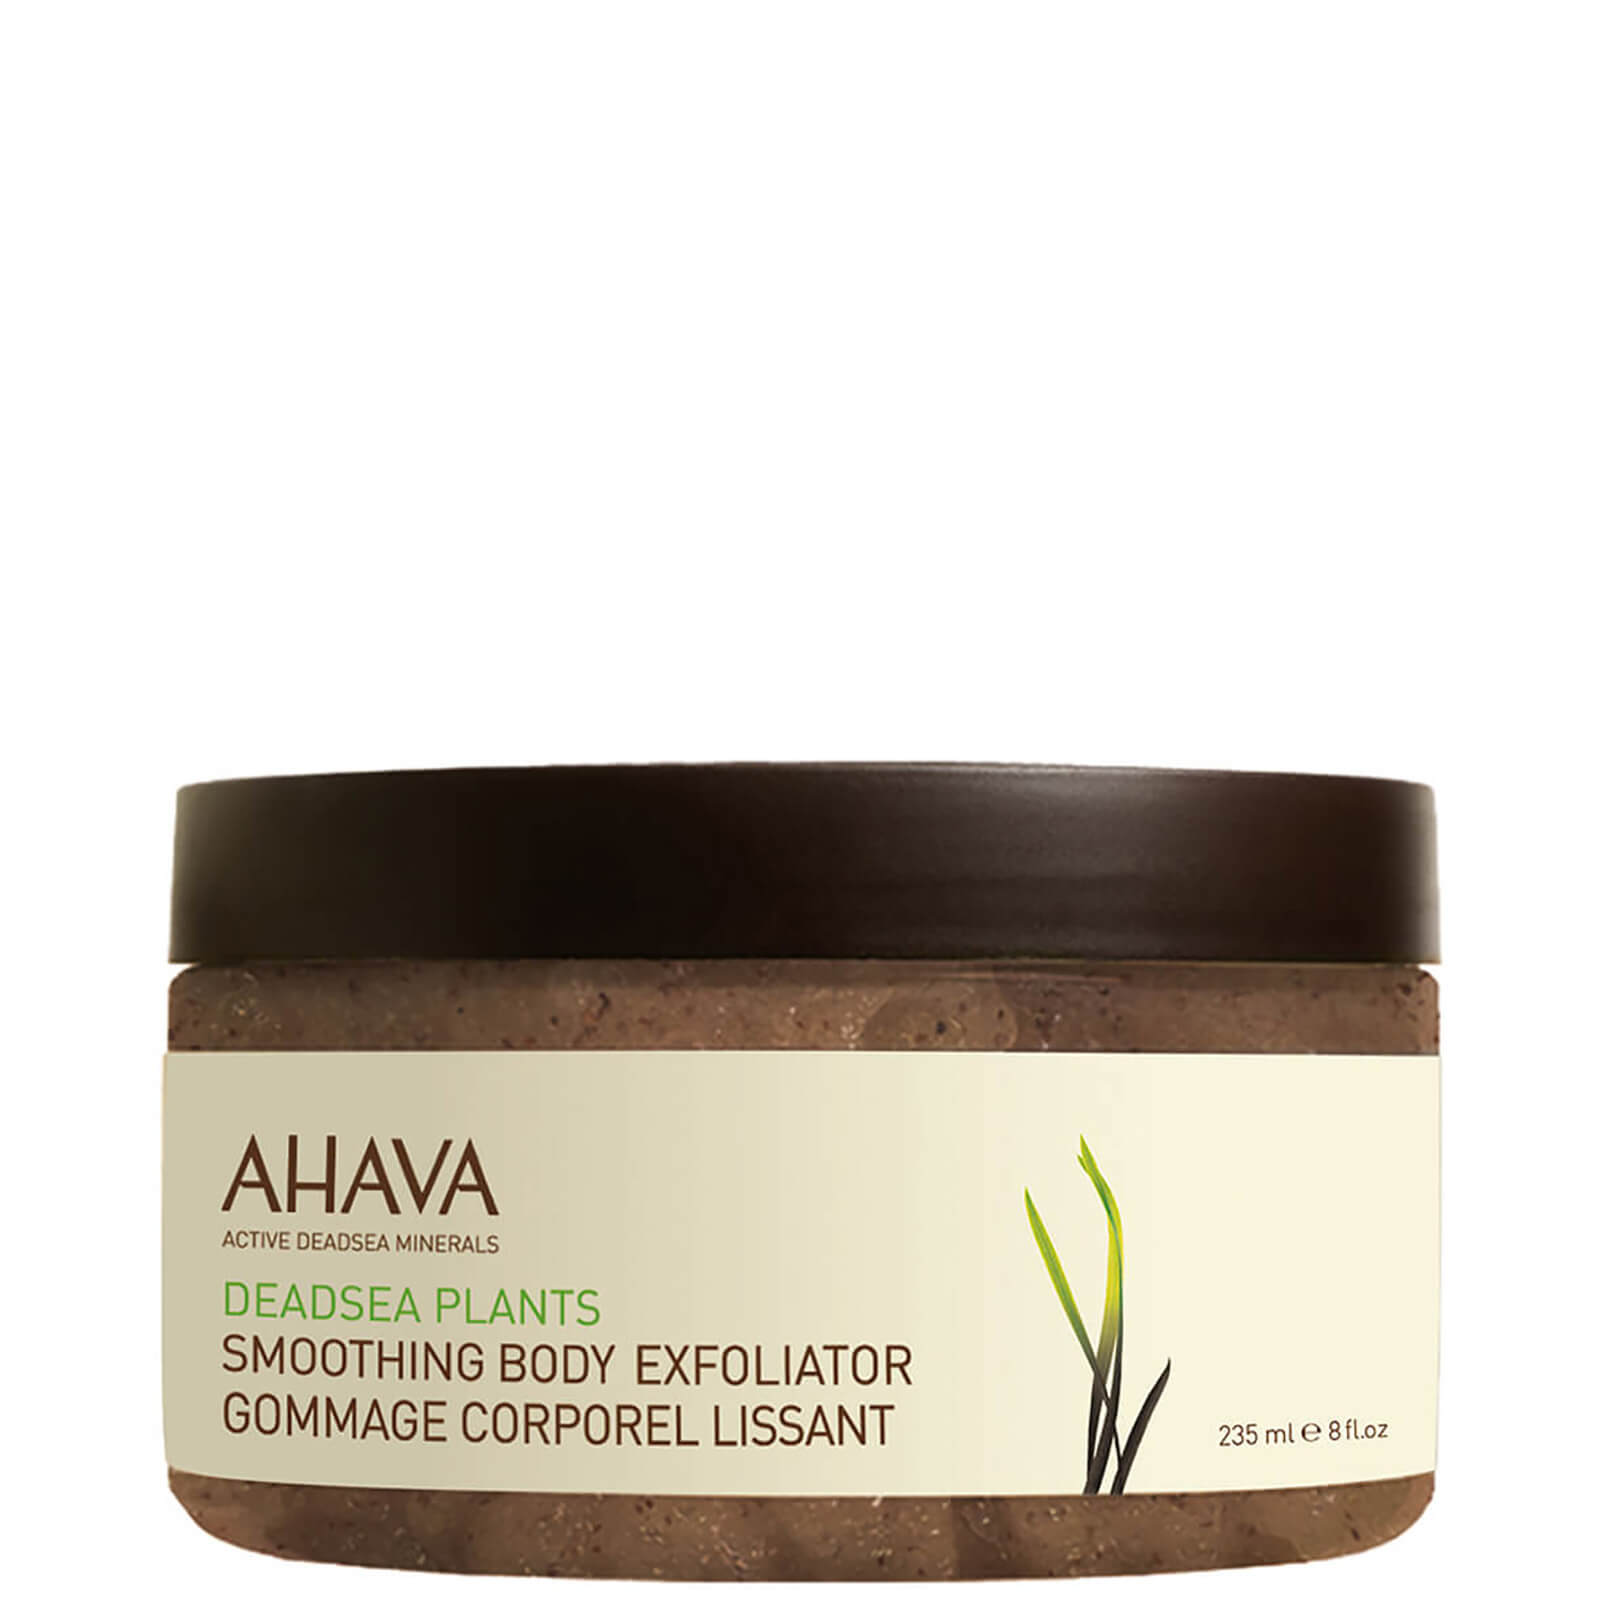 Watch a story about AHAVA SMOOTHING BODY EXFOLIATOR 235ML